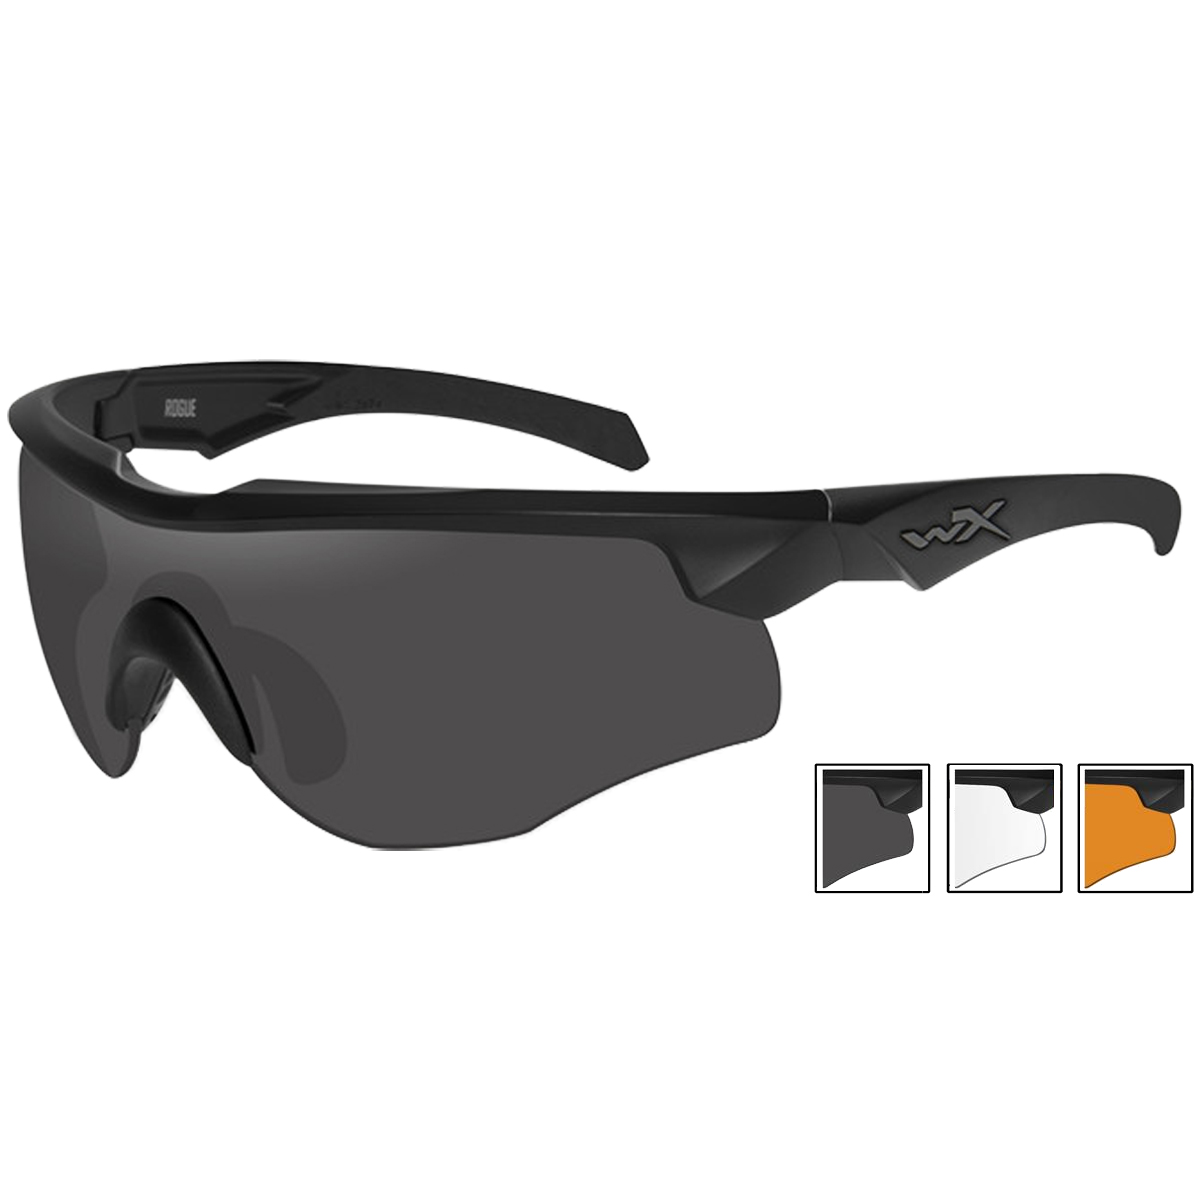 e6598fb157b8 Details about Wiley X WX Rogue Comm Glasses Smoke Grey Clear Light Rust  Lenses Matte Black